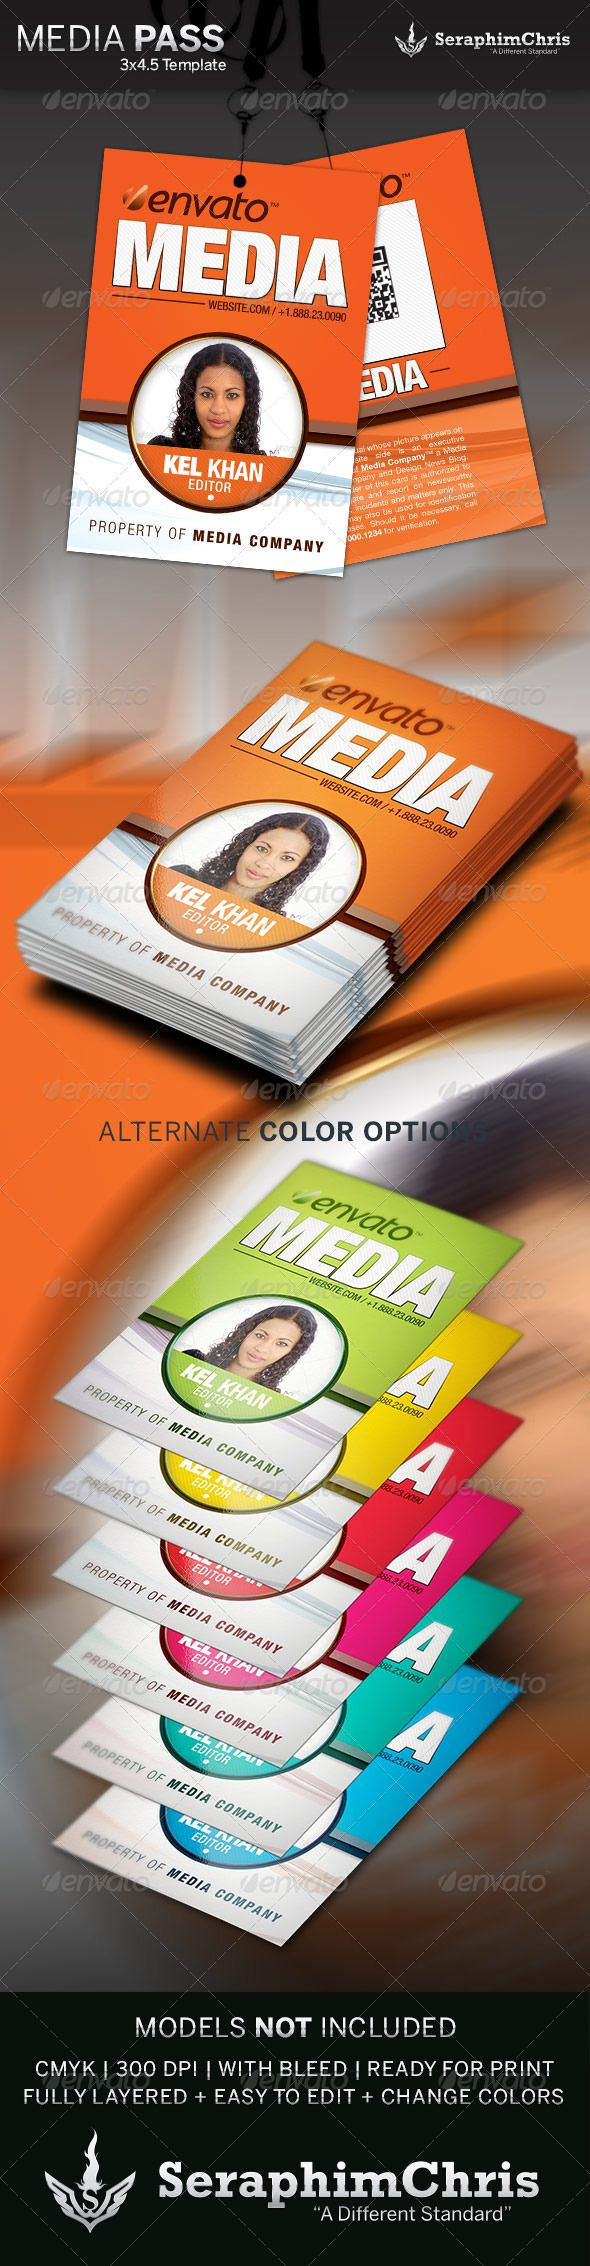 9 best press pass template images on pinterest font logo for Media press pass template